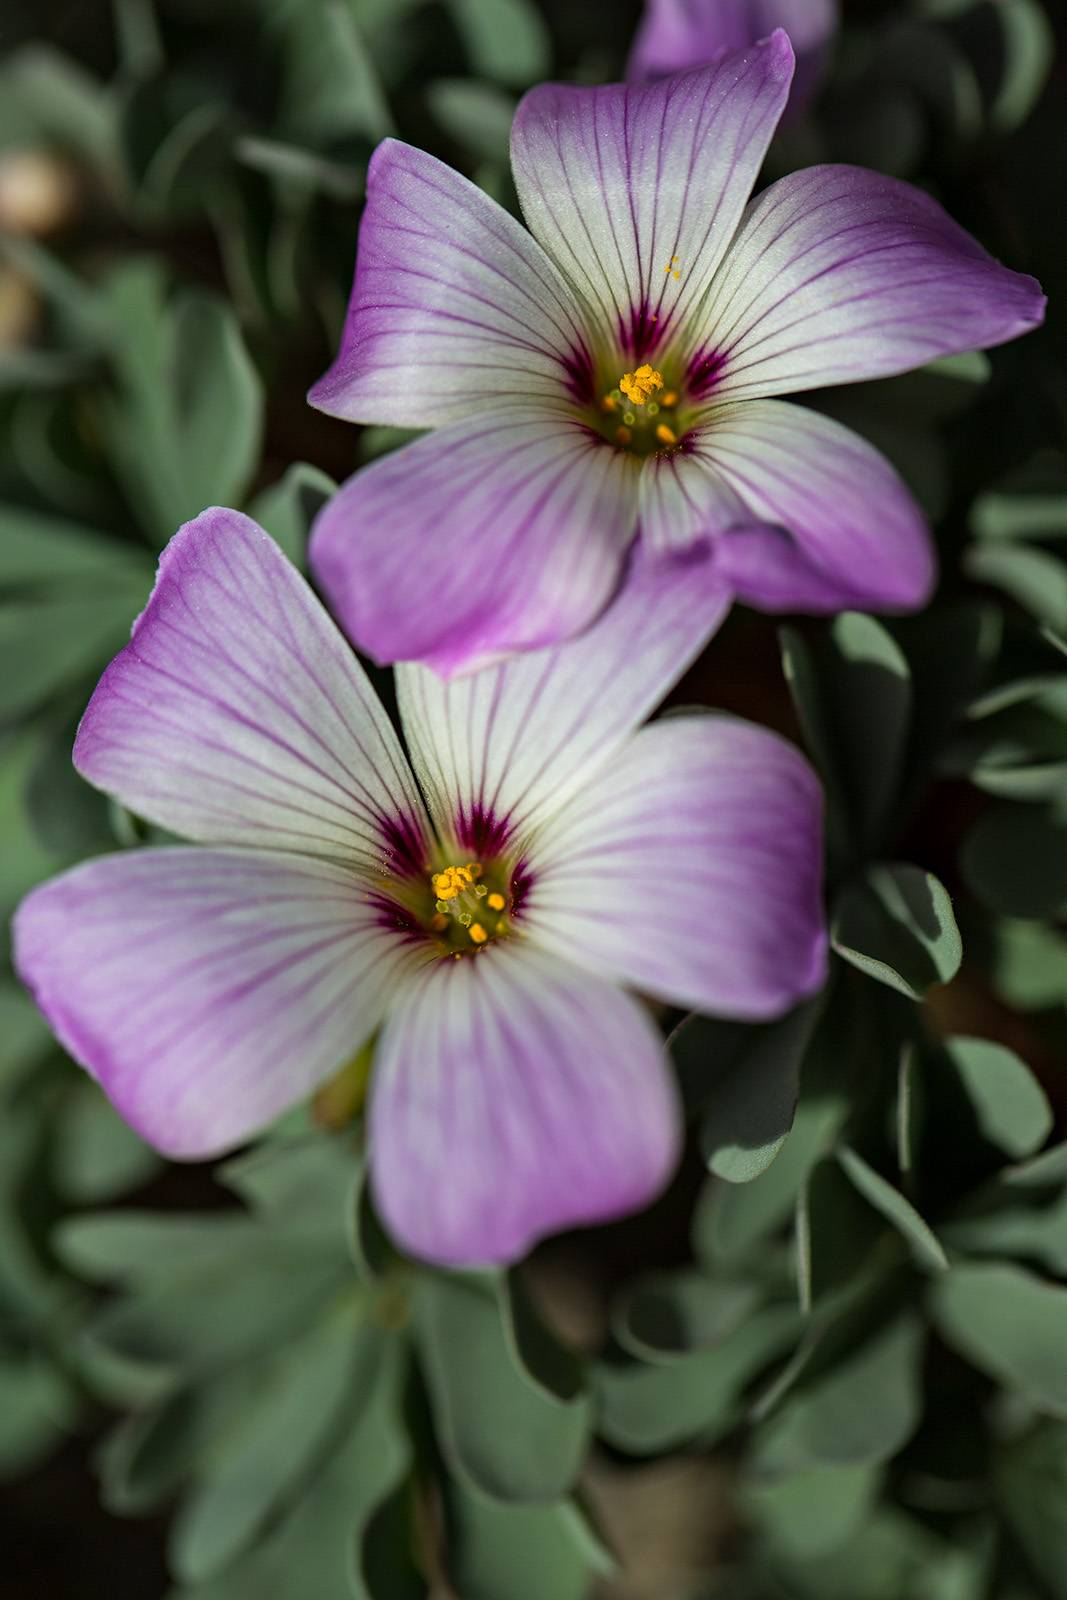 Close-up of the flowers of Oxalis adenophylla